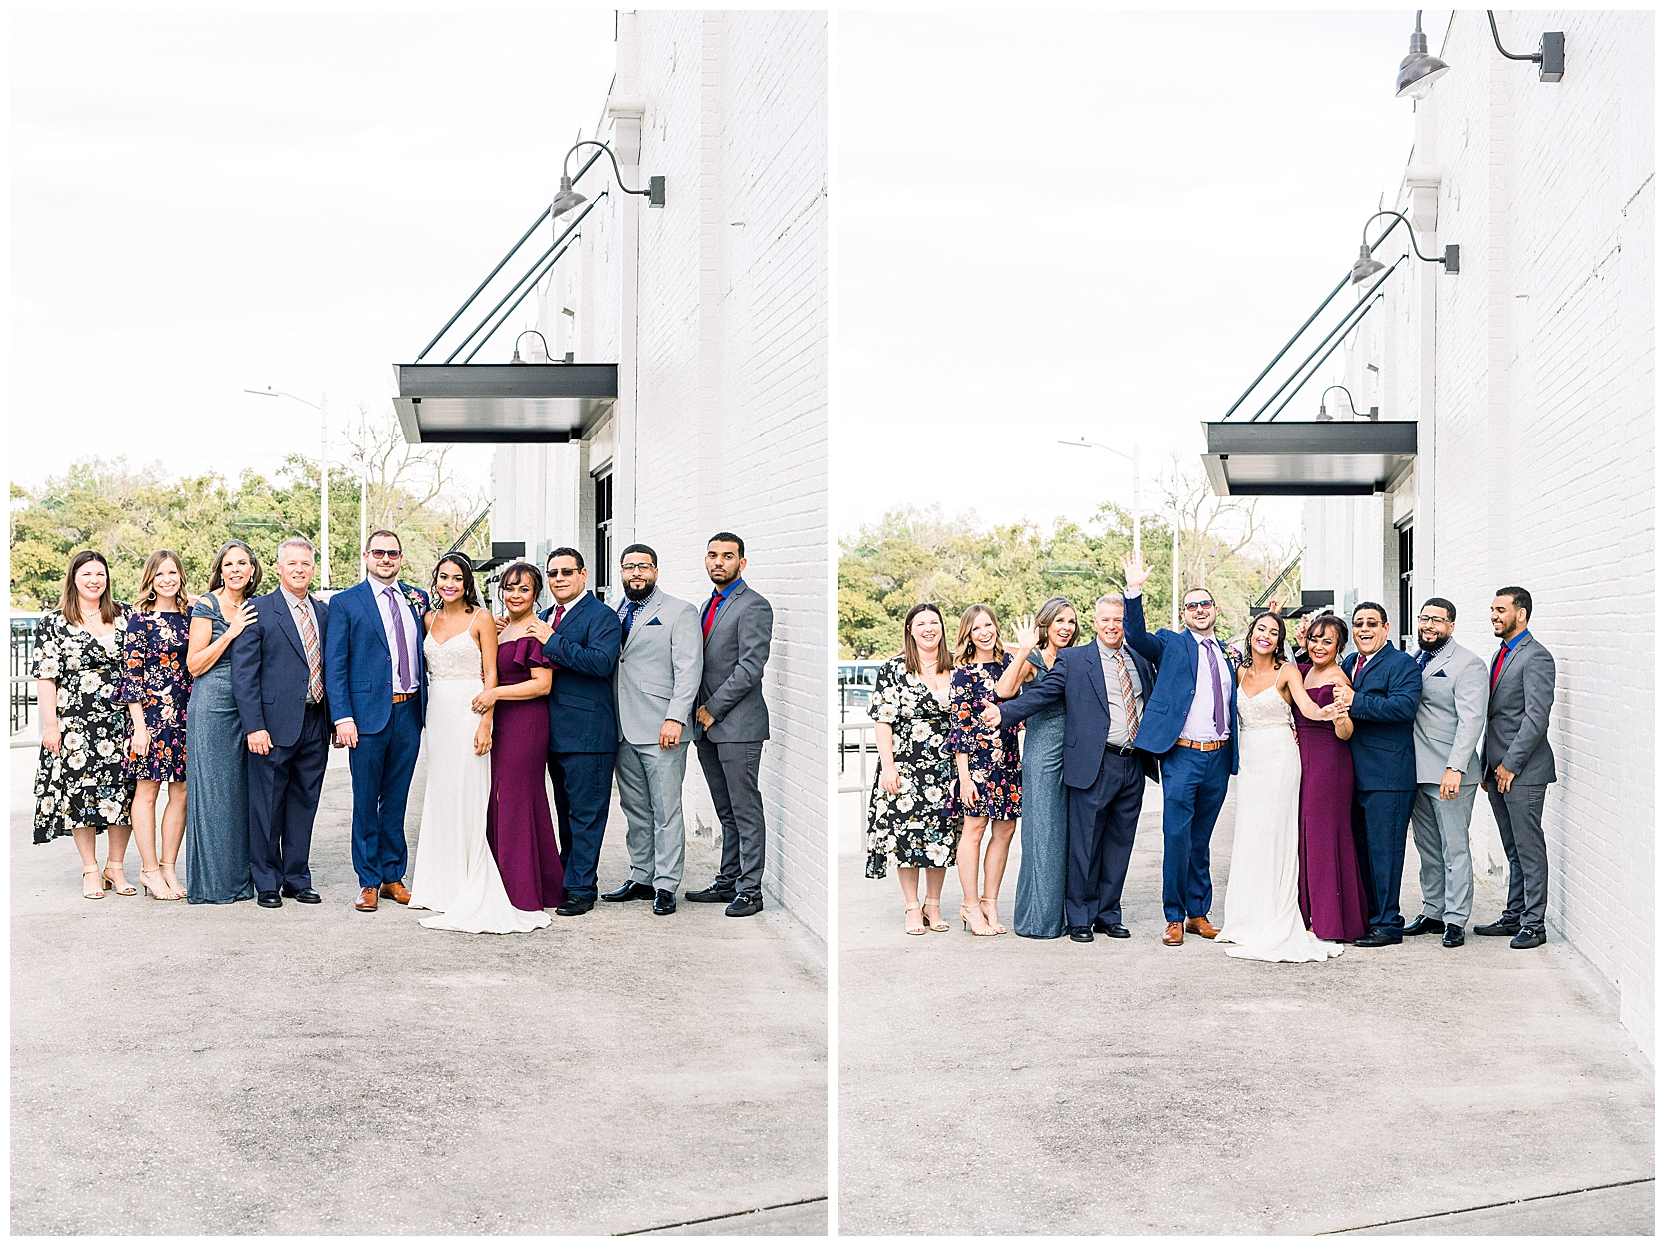 jessicafredericks_lakeland_tampa_wedding_purple_crazy hour_0040.jpg